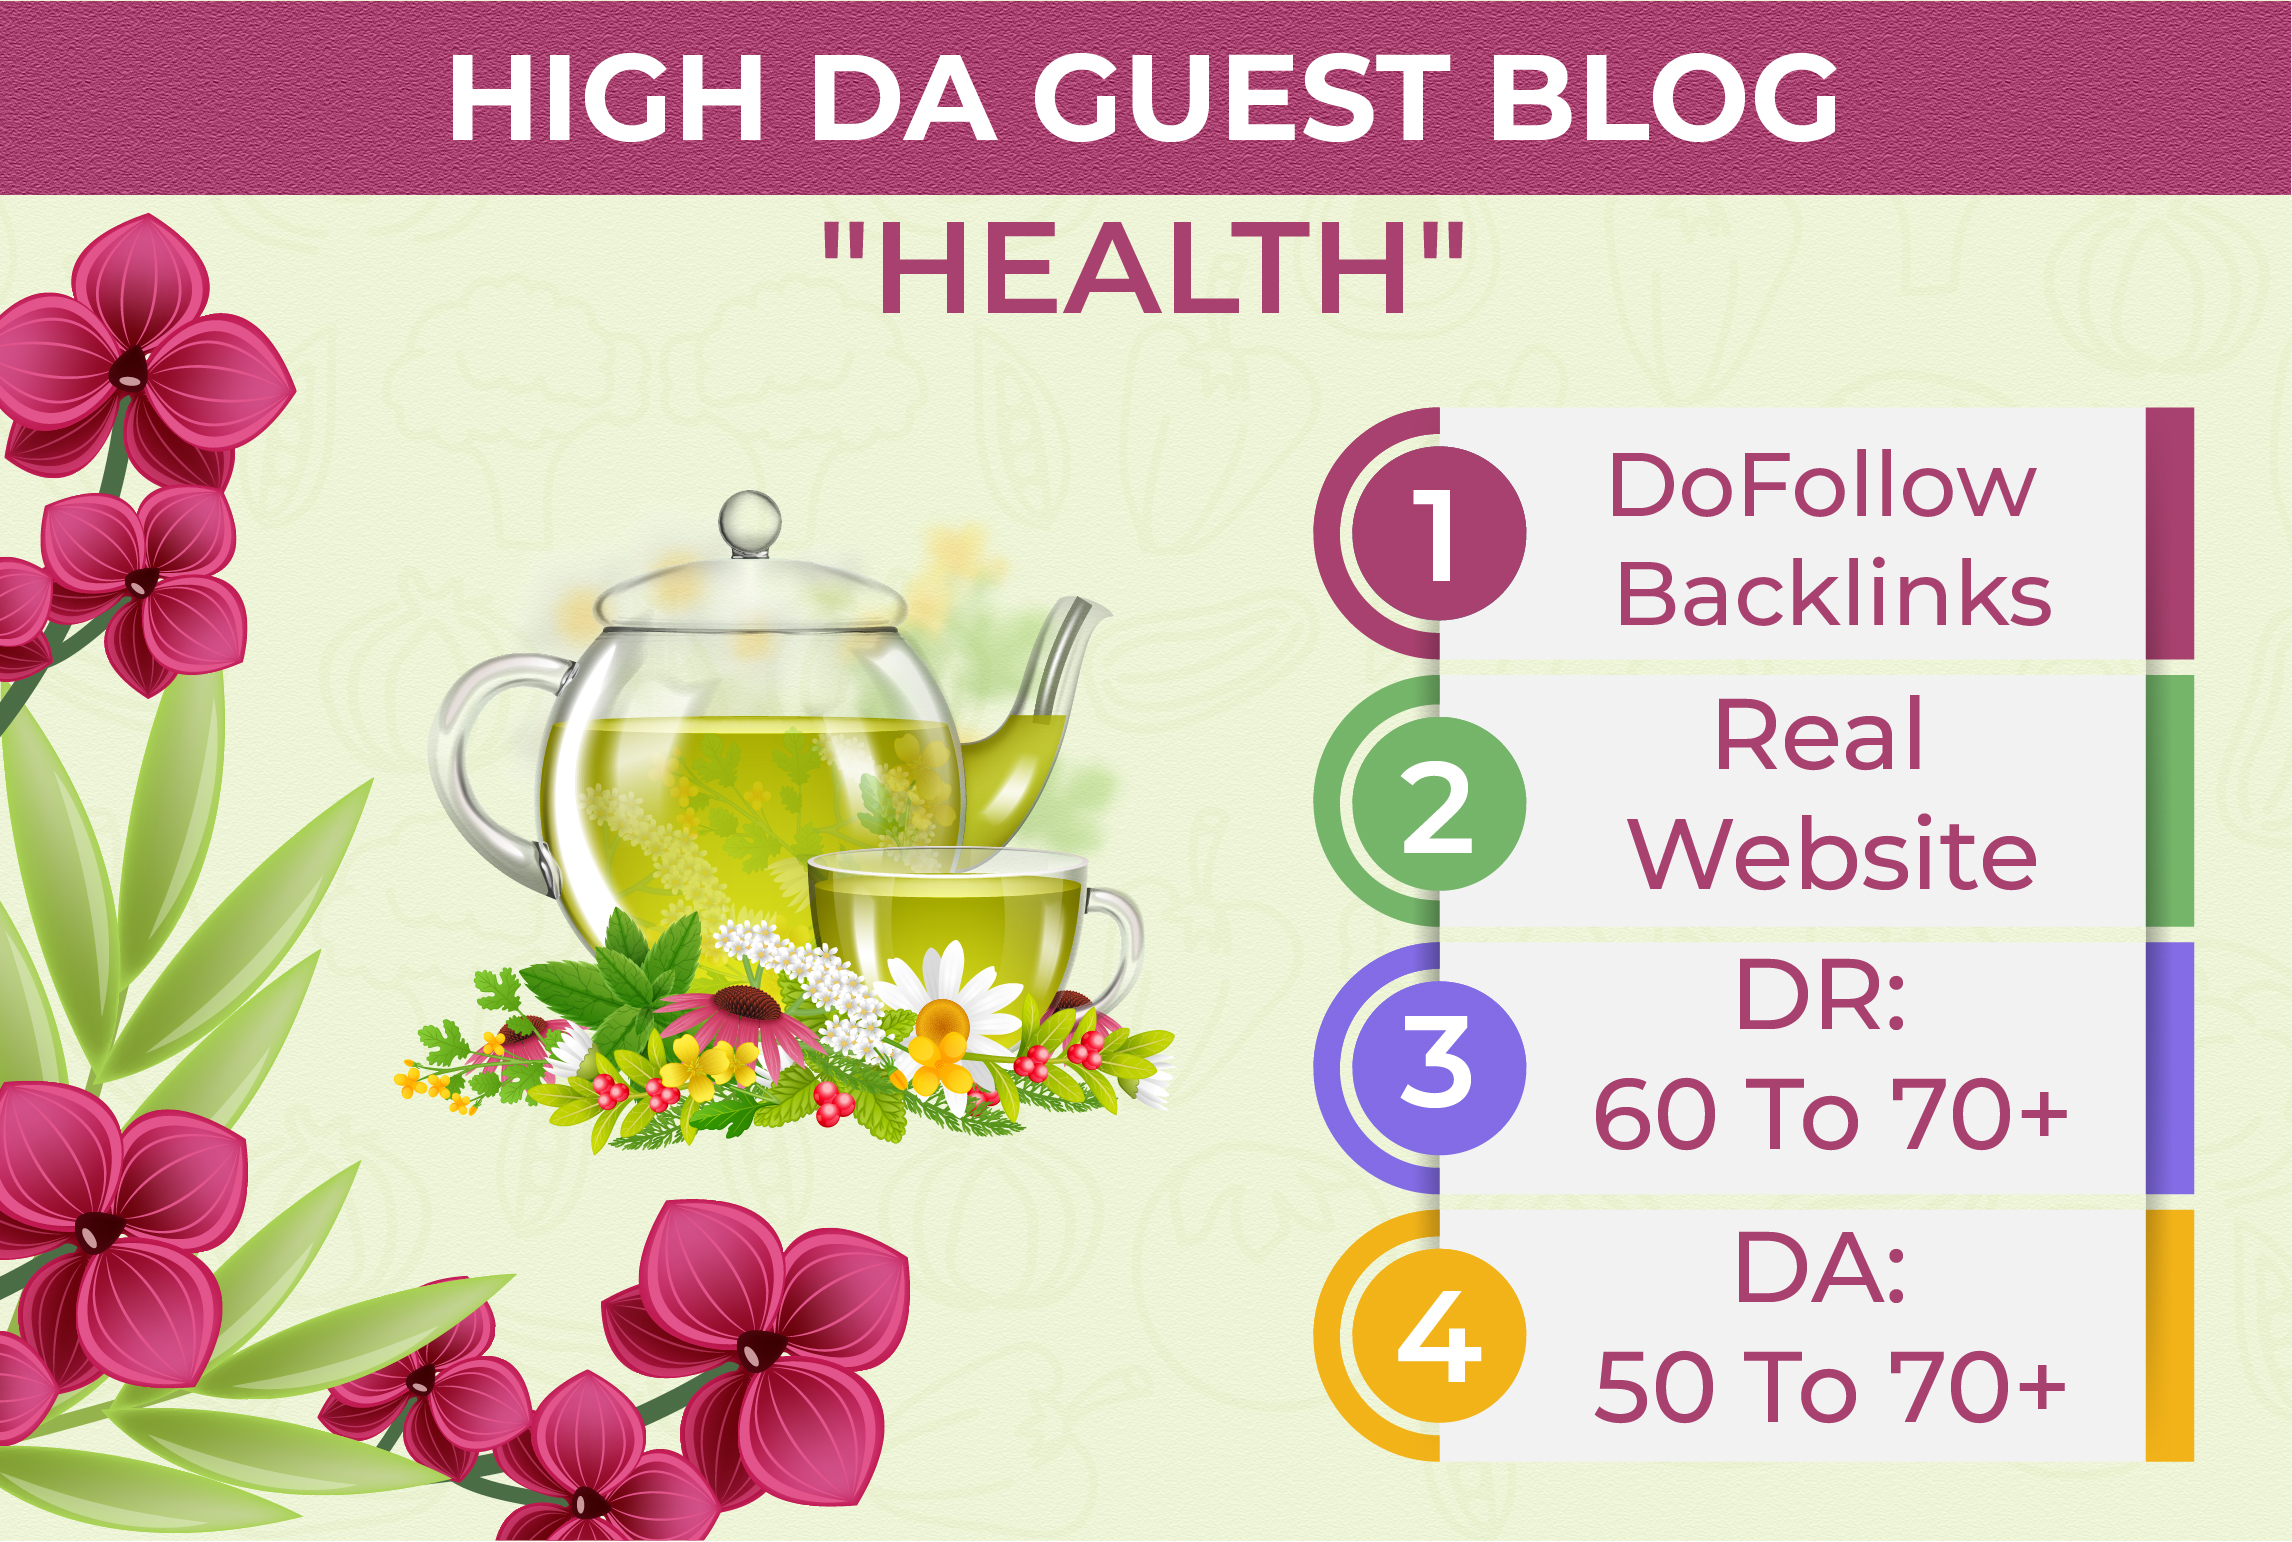 I will published high da guest post on health and beauty blog